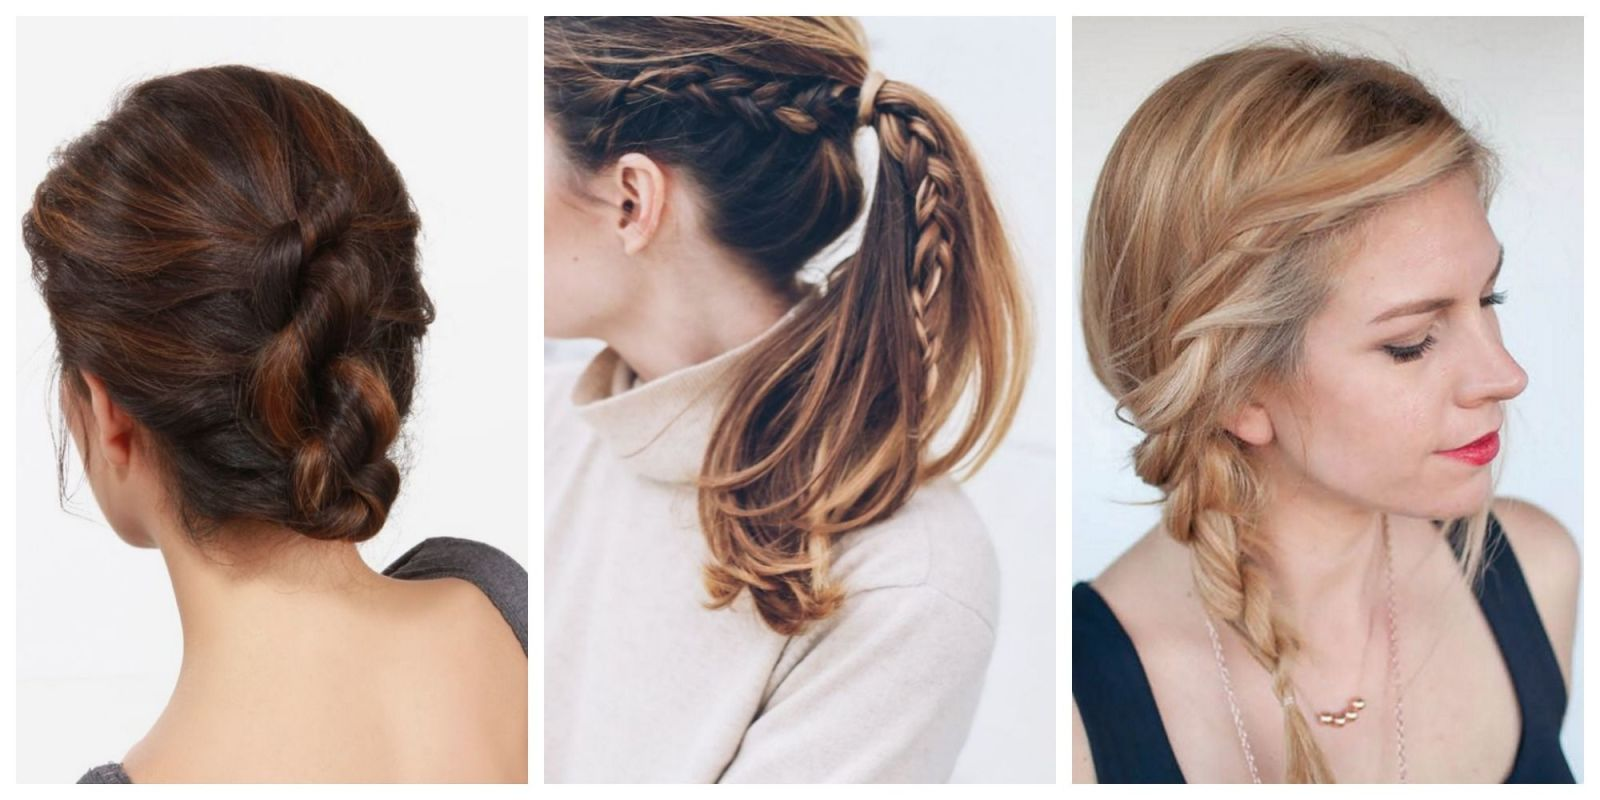 Practical Hairstyles For Moms 20 Easy Summer Hairstyles For Women Hot Summer Haircuts